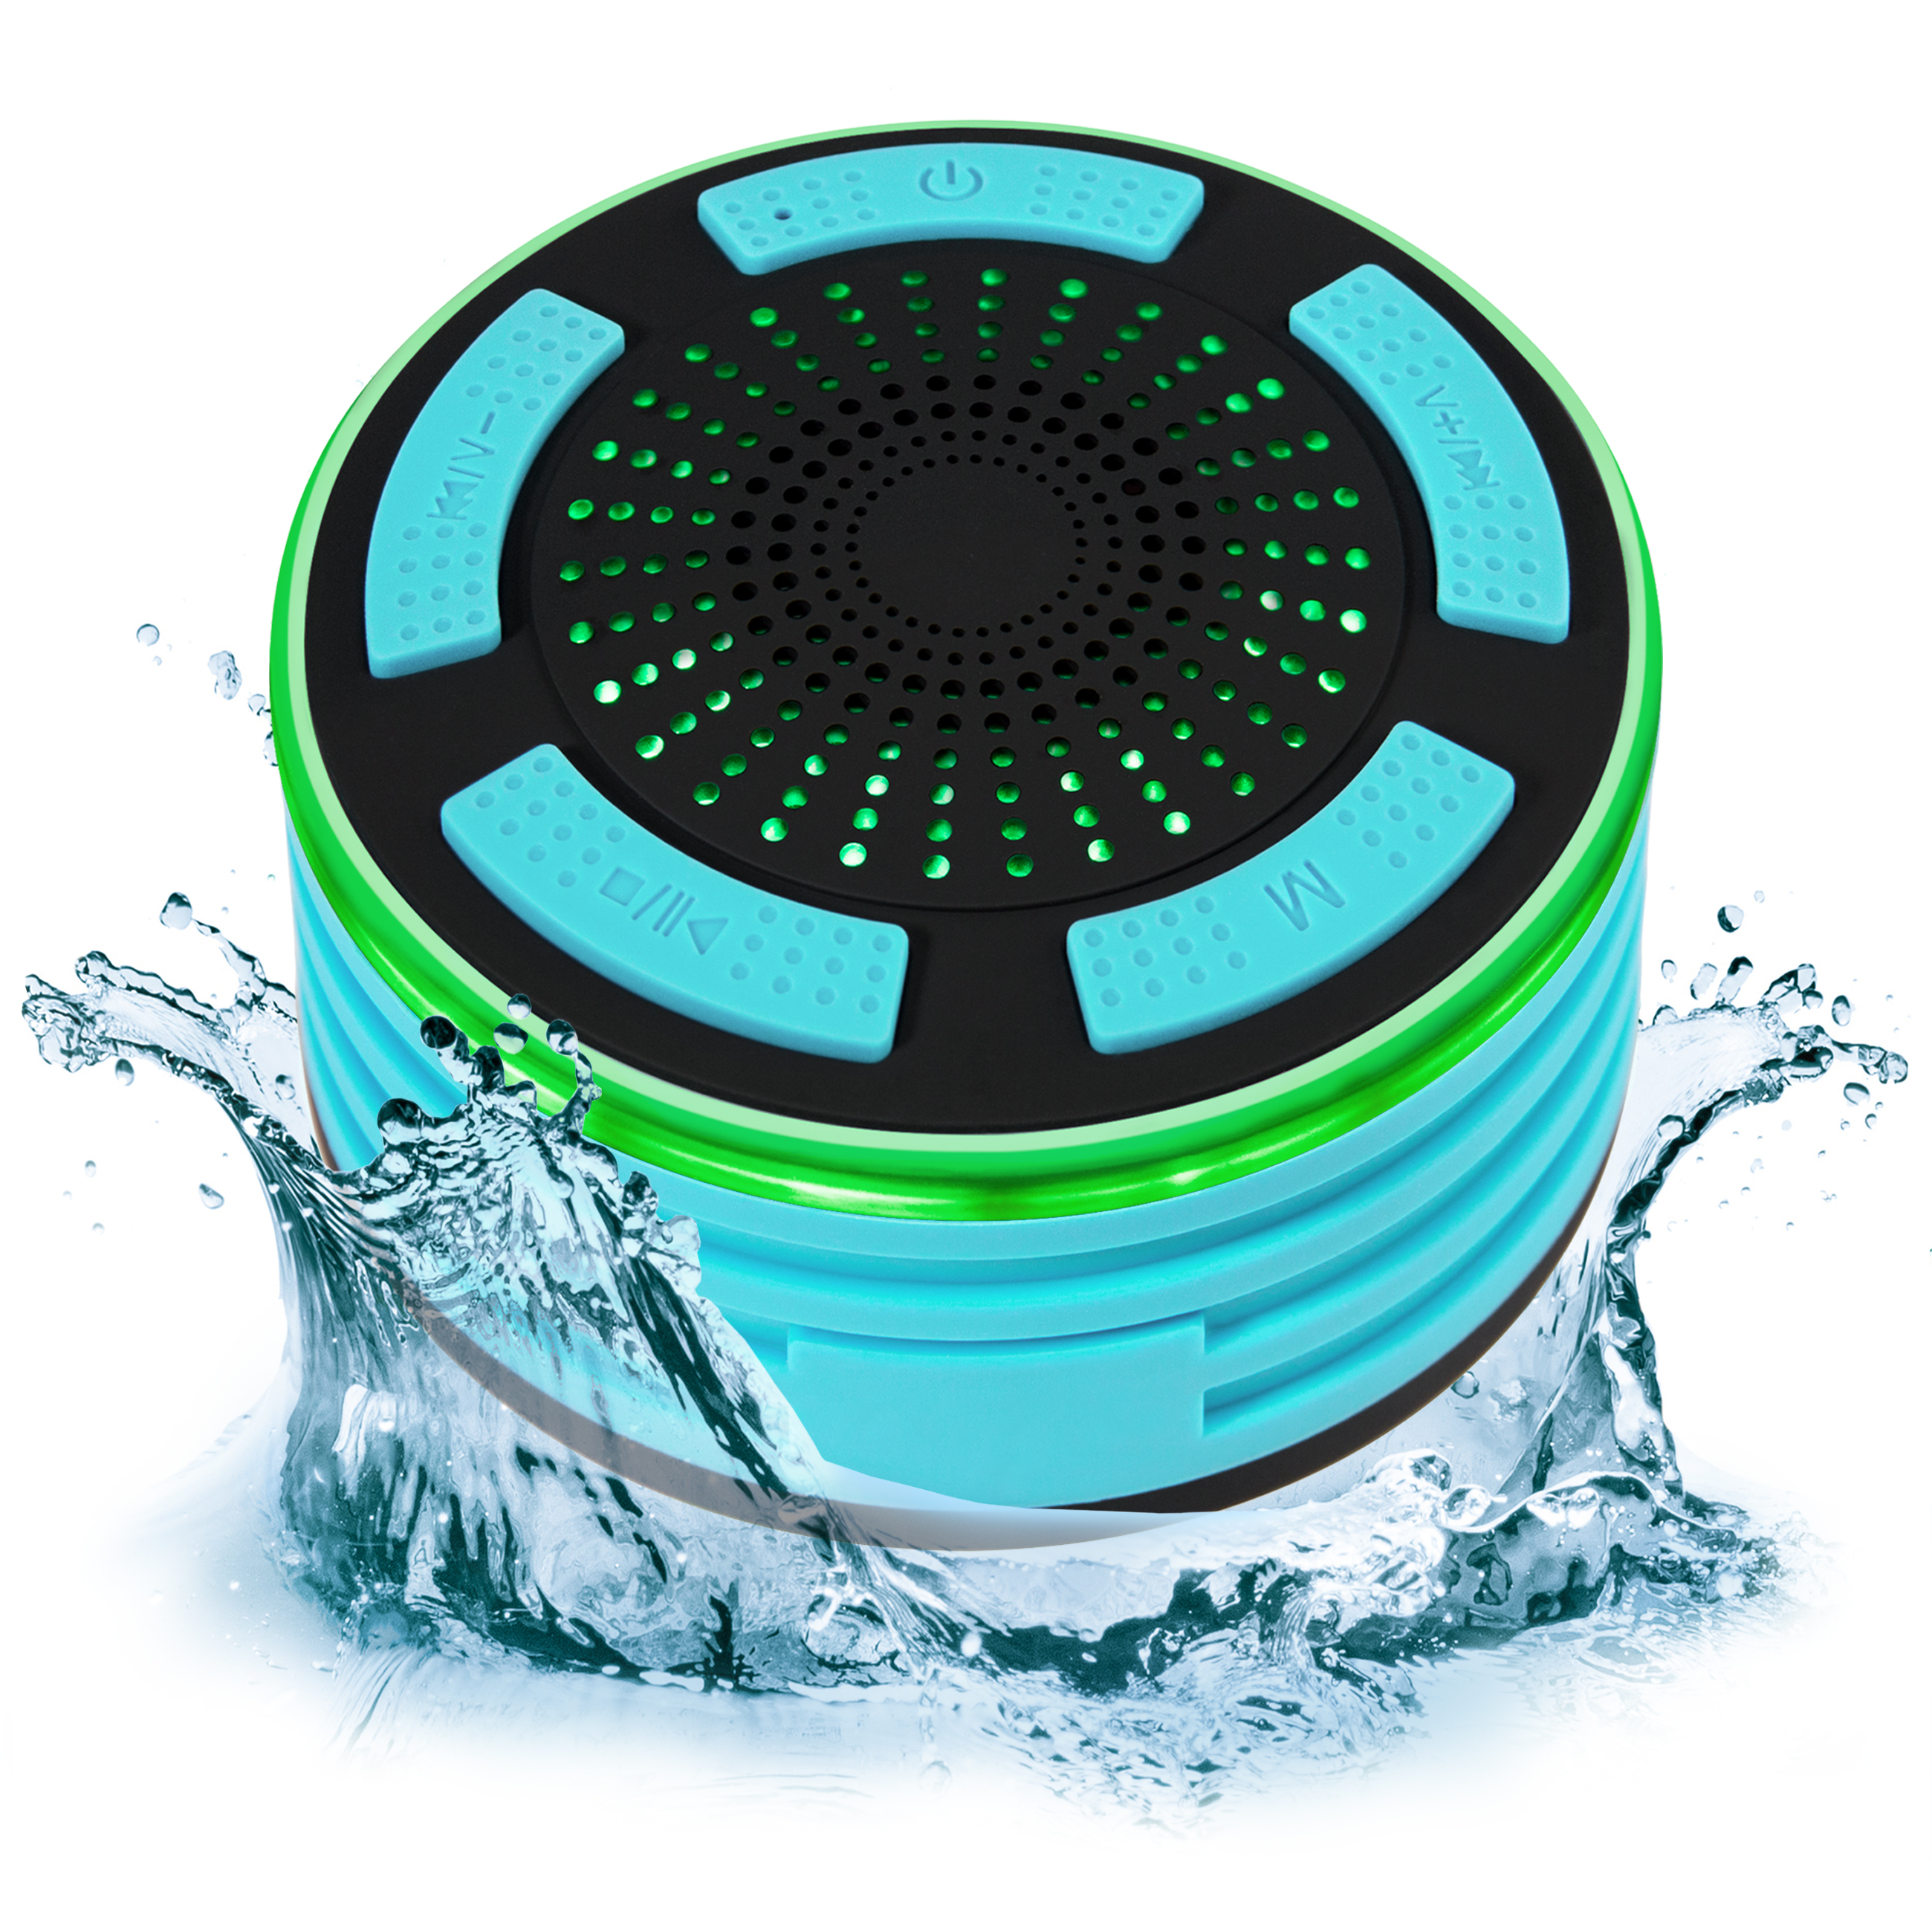 Best Choice Products Portable Waterproof Floating Bluetooth Speaker w/ FM Radio, Microphone, LED Lights - Aqua Blue